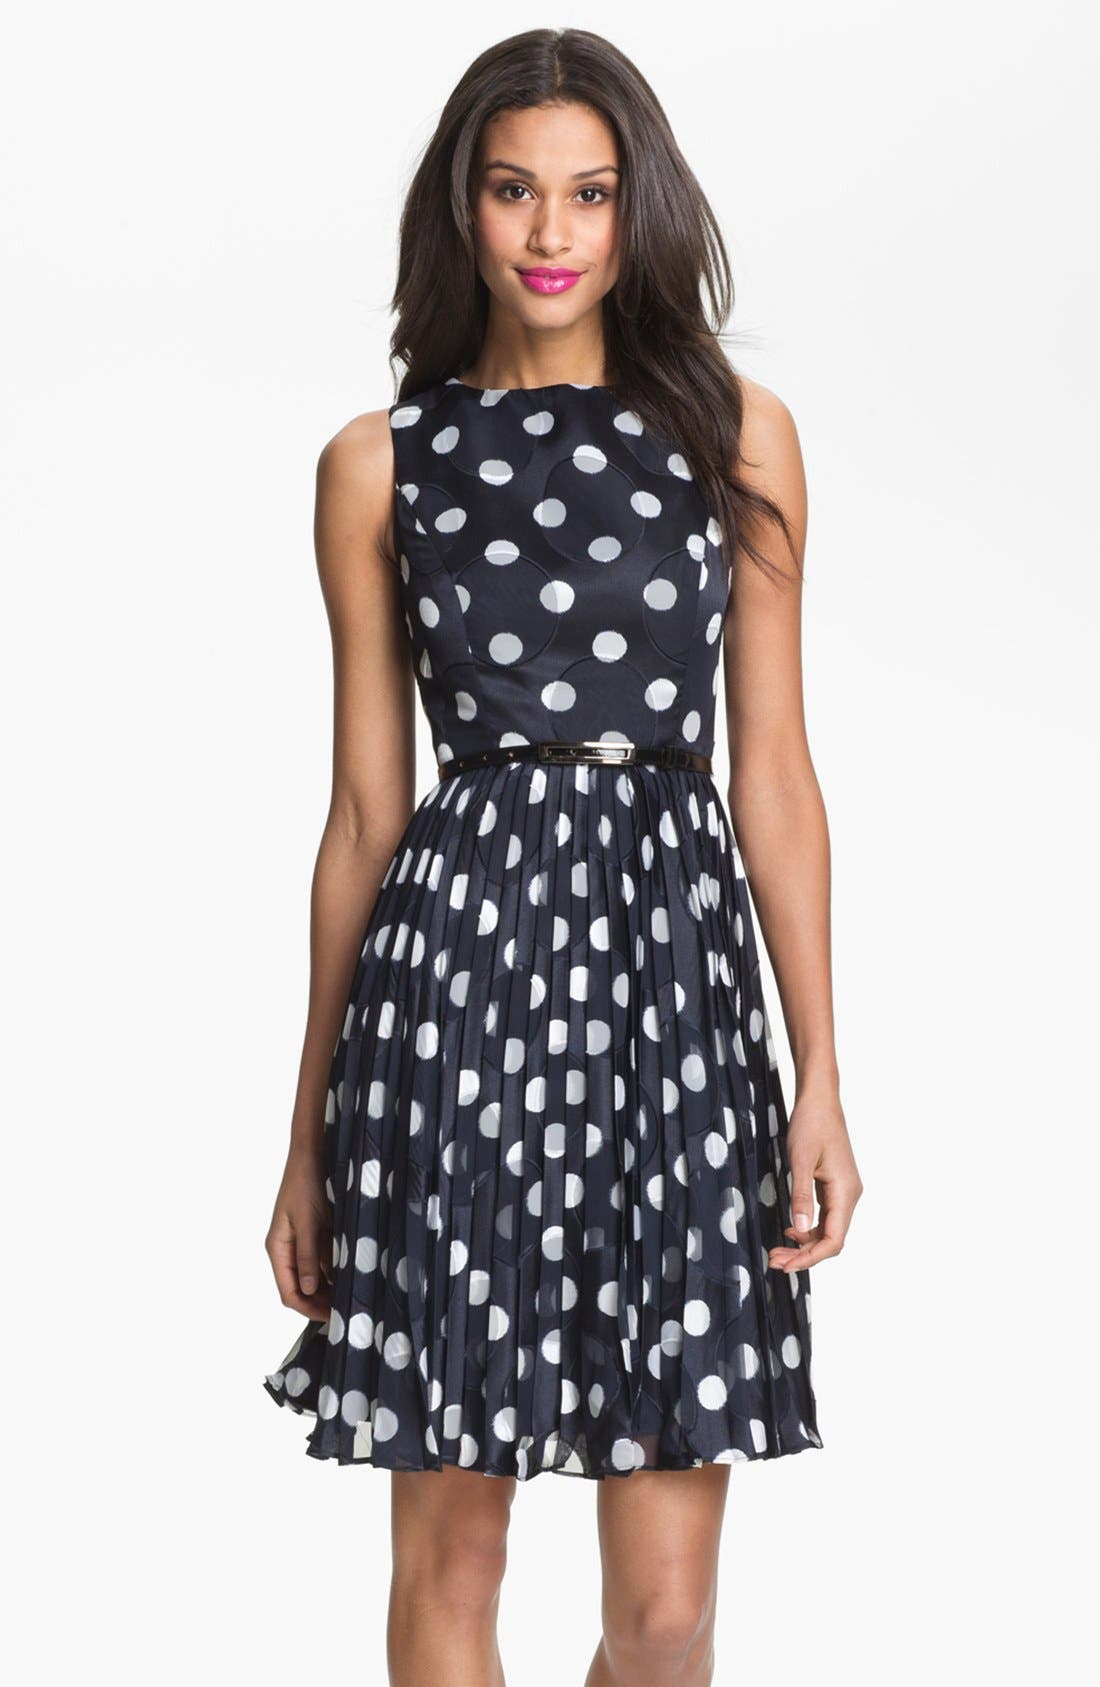 ADRIANNA PAPELL Burnout Polka Dot Fit & Flare